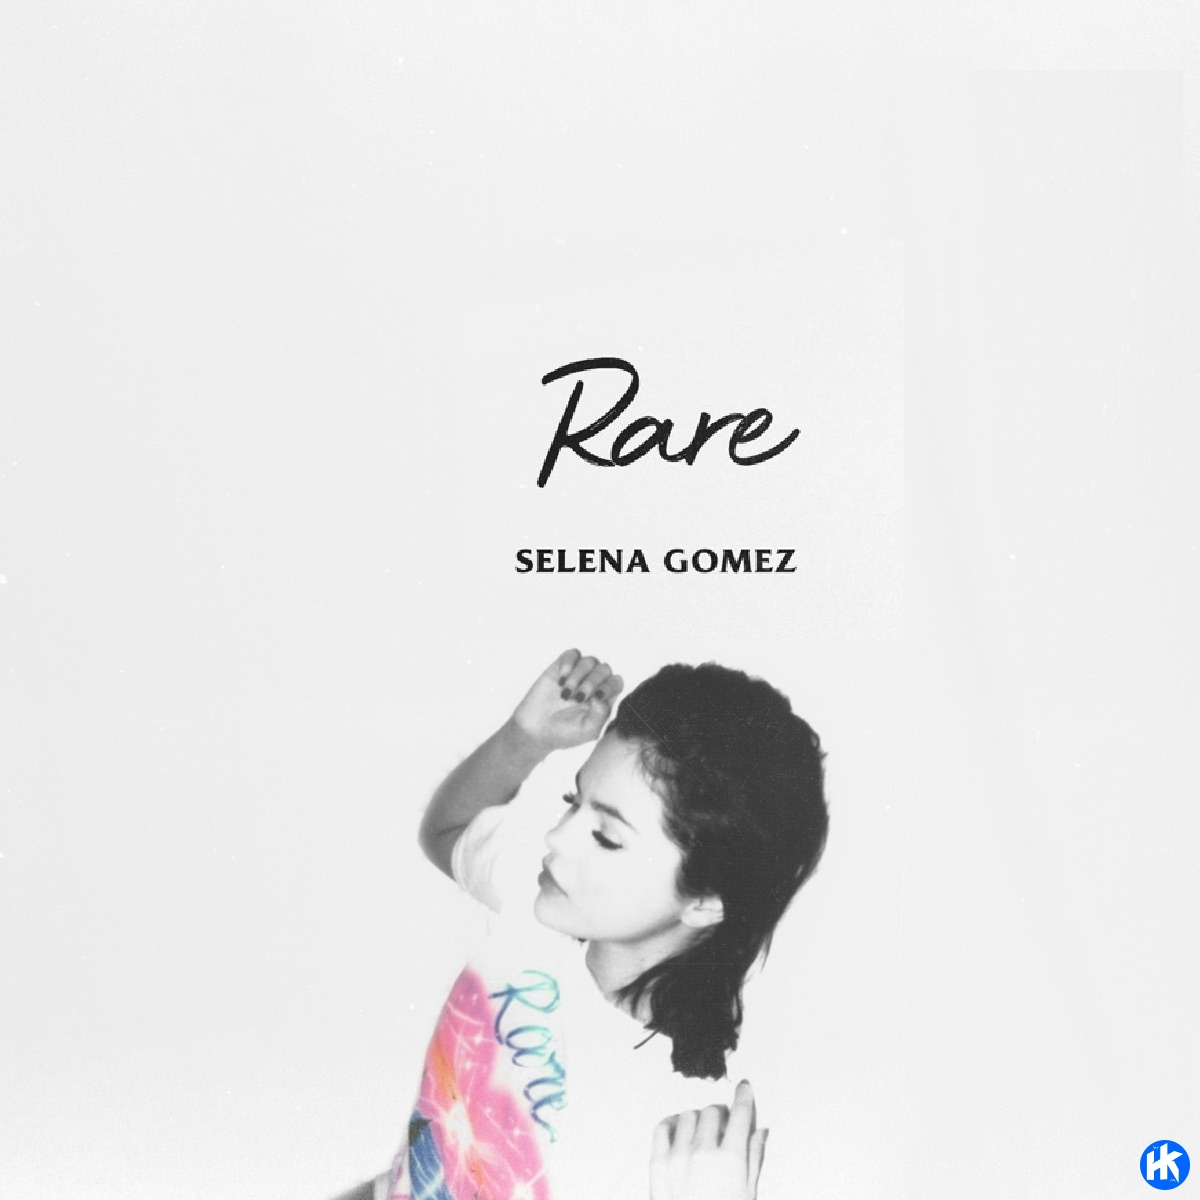 Selena Gomez – A Sweeter Place ft. Kid Cudi